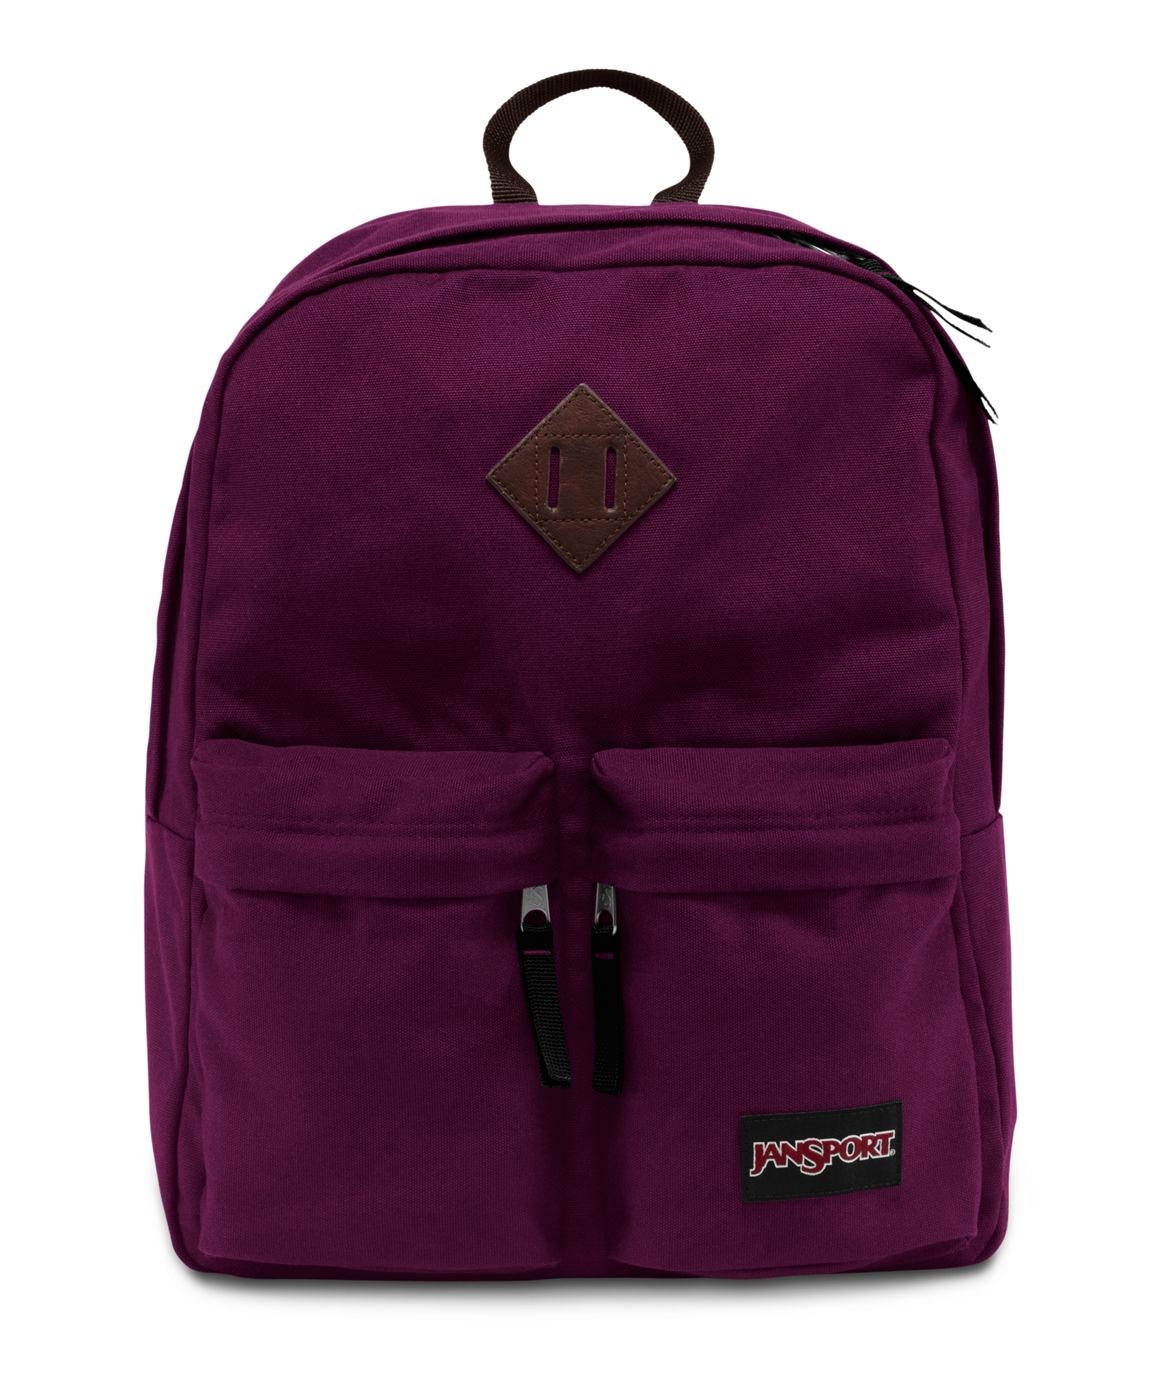 Light Purple Jansport Backpack RCZKTufl